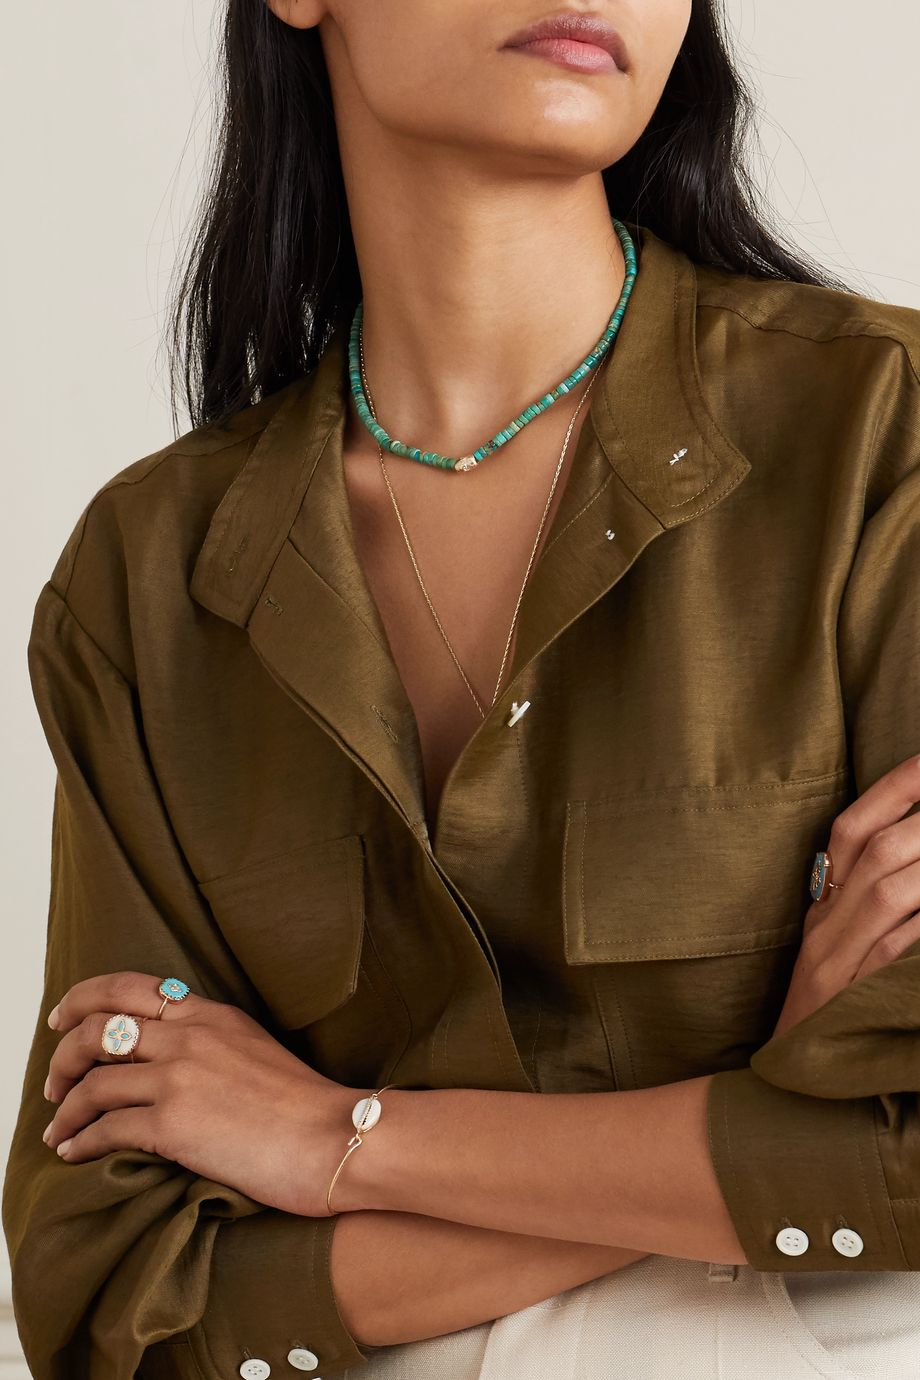 Pascale Monvoisin Taylor N°1 9-karat gold, turquoise and diamond necklace